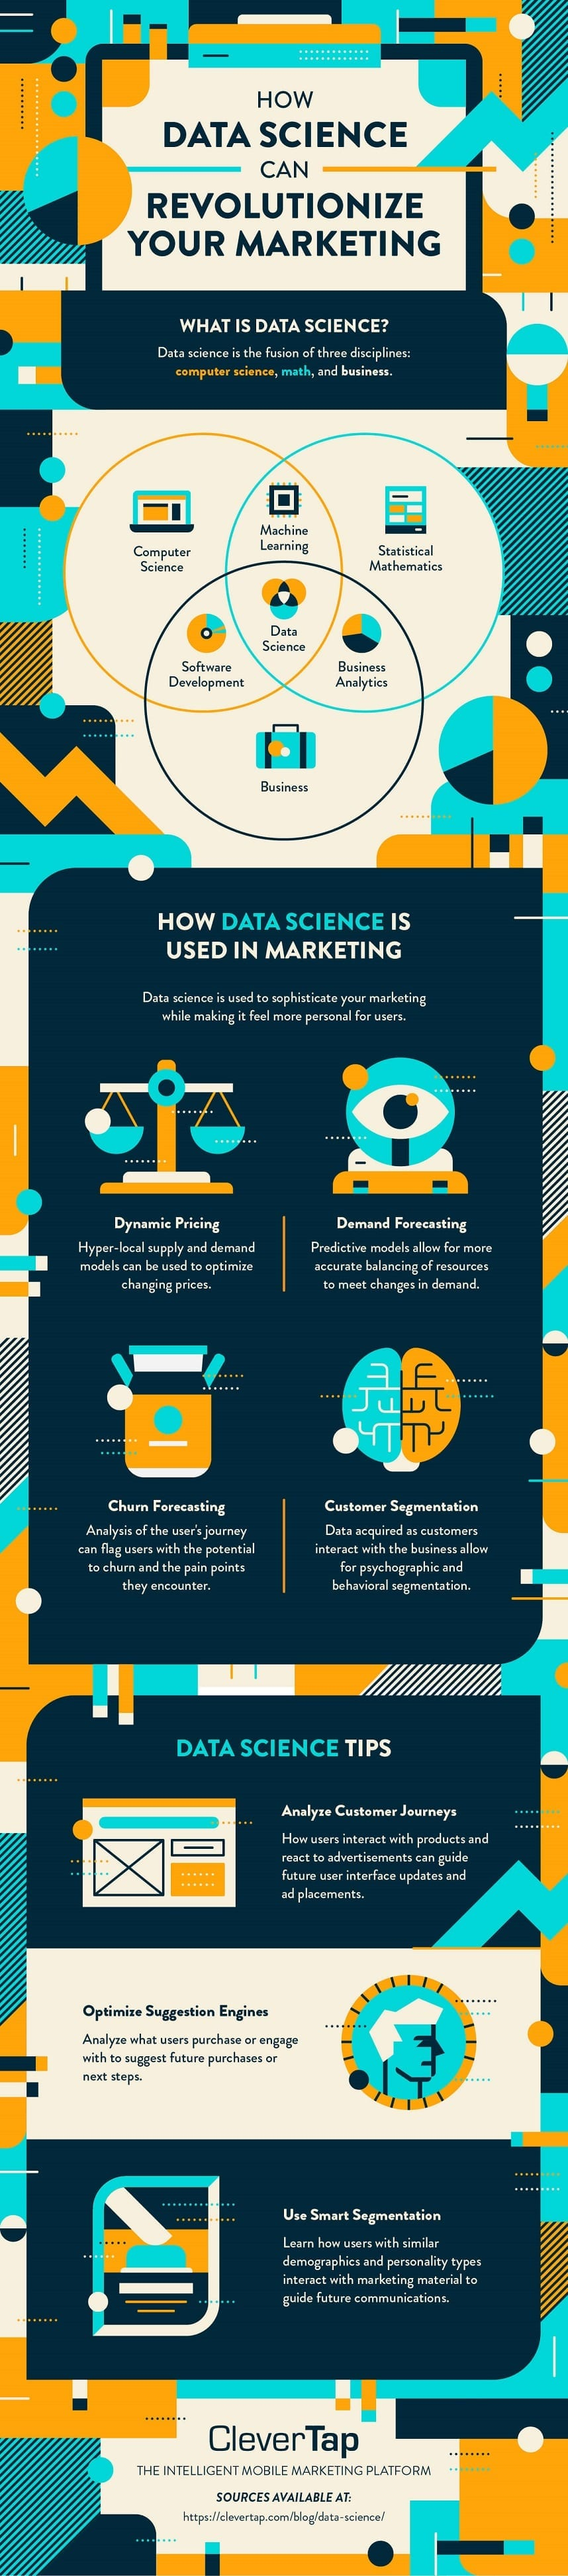 How Data Science can Revolutionize your Marketing (Infographic)